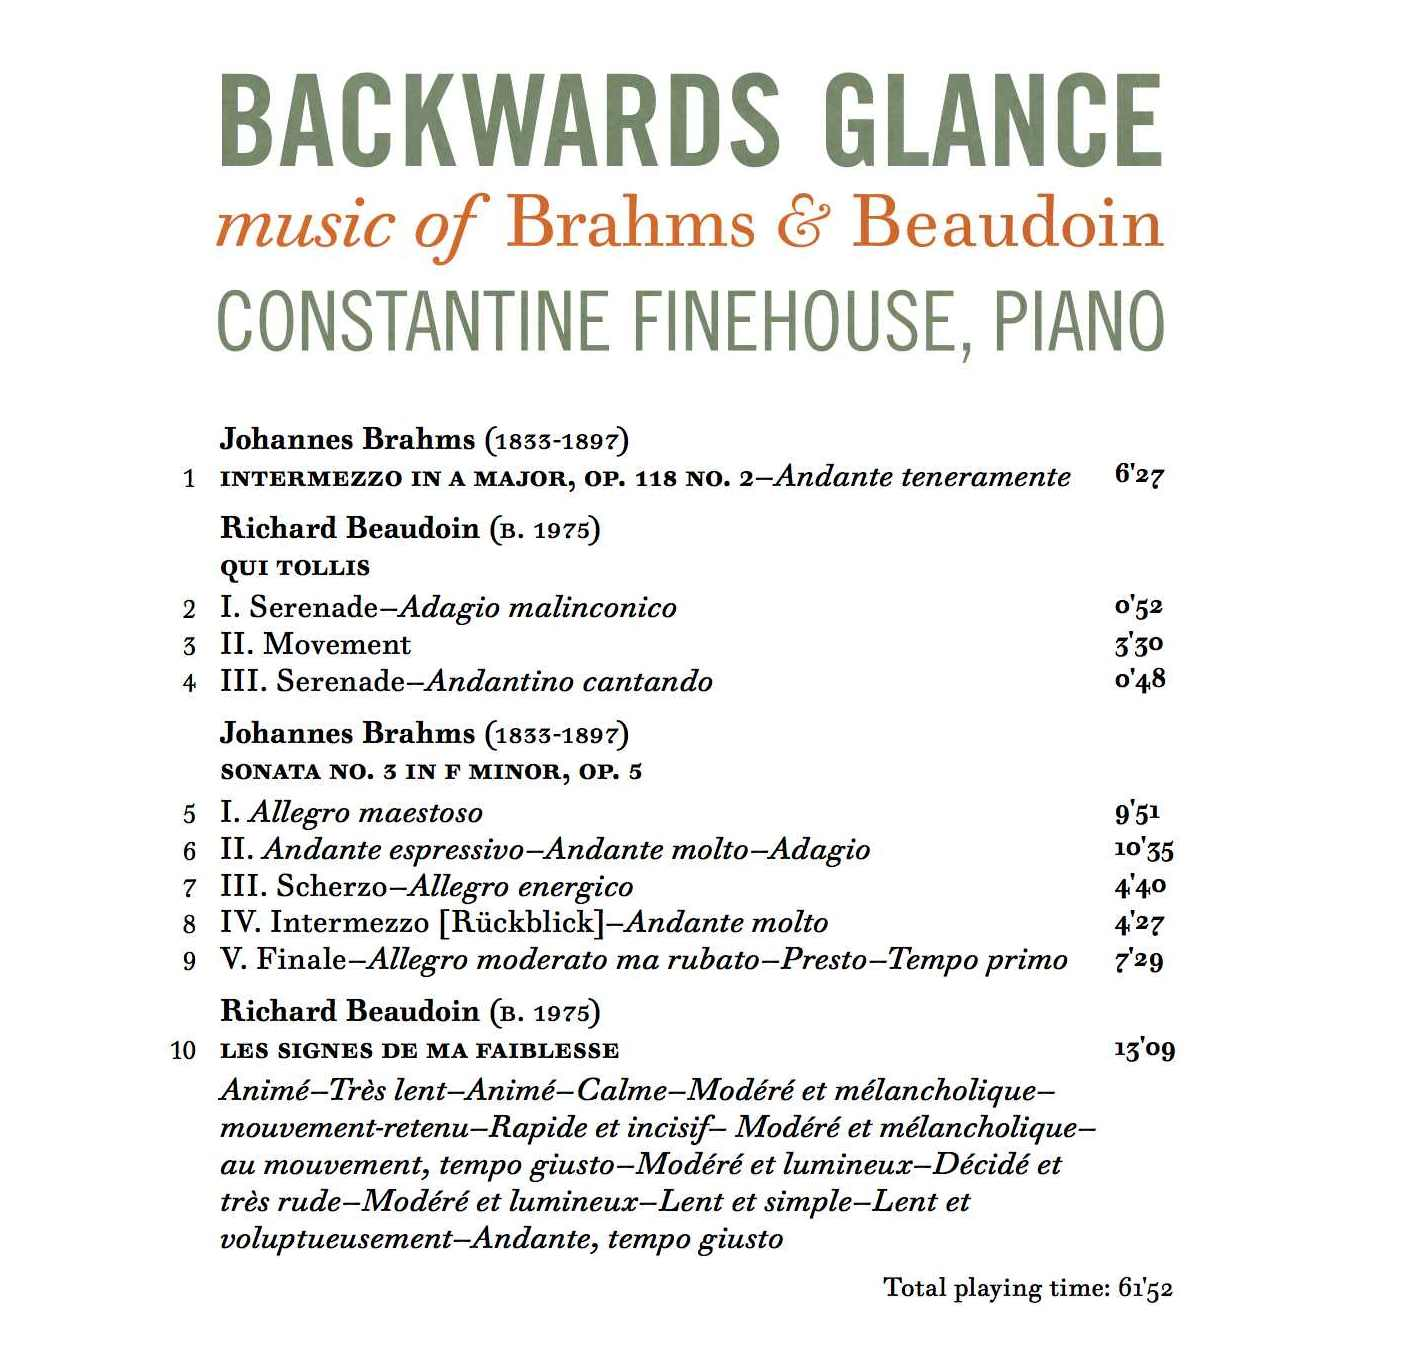 Backwards Glance Back Cover.jpg